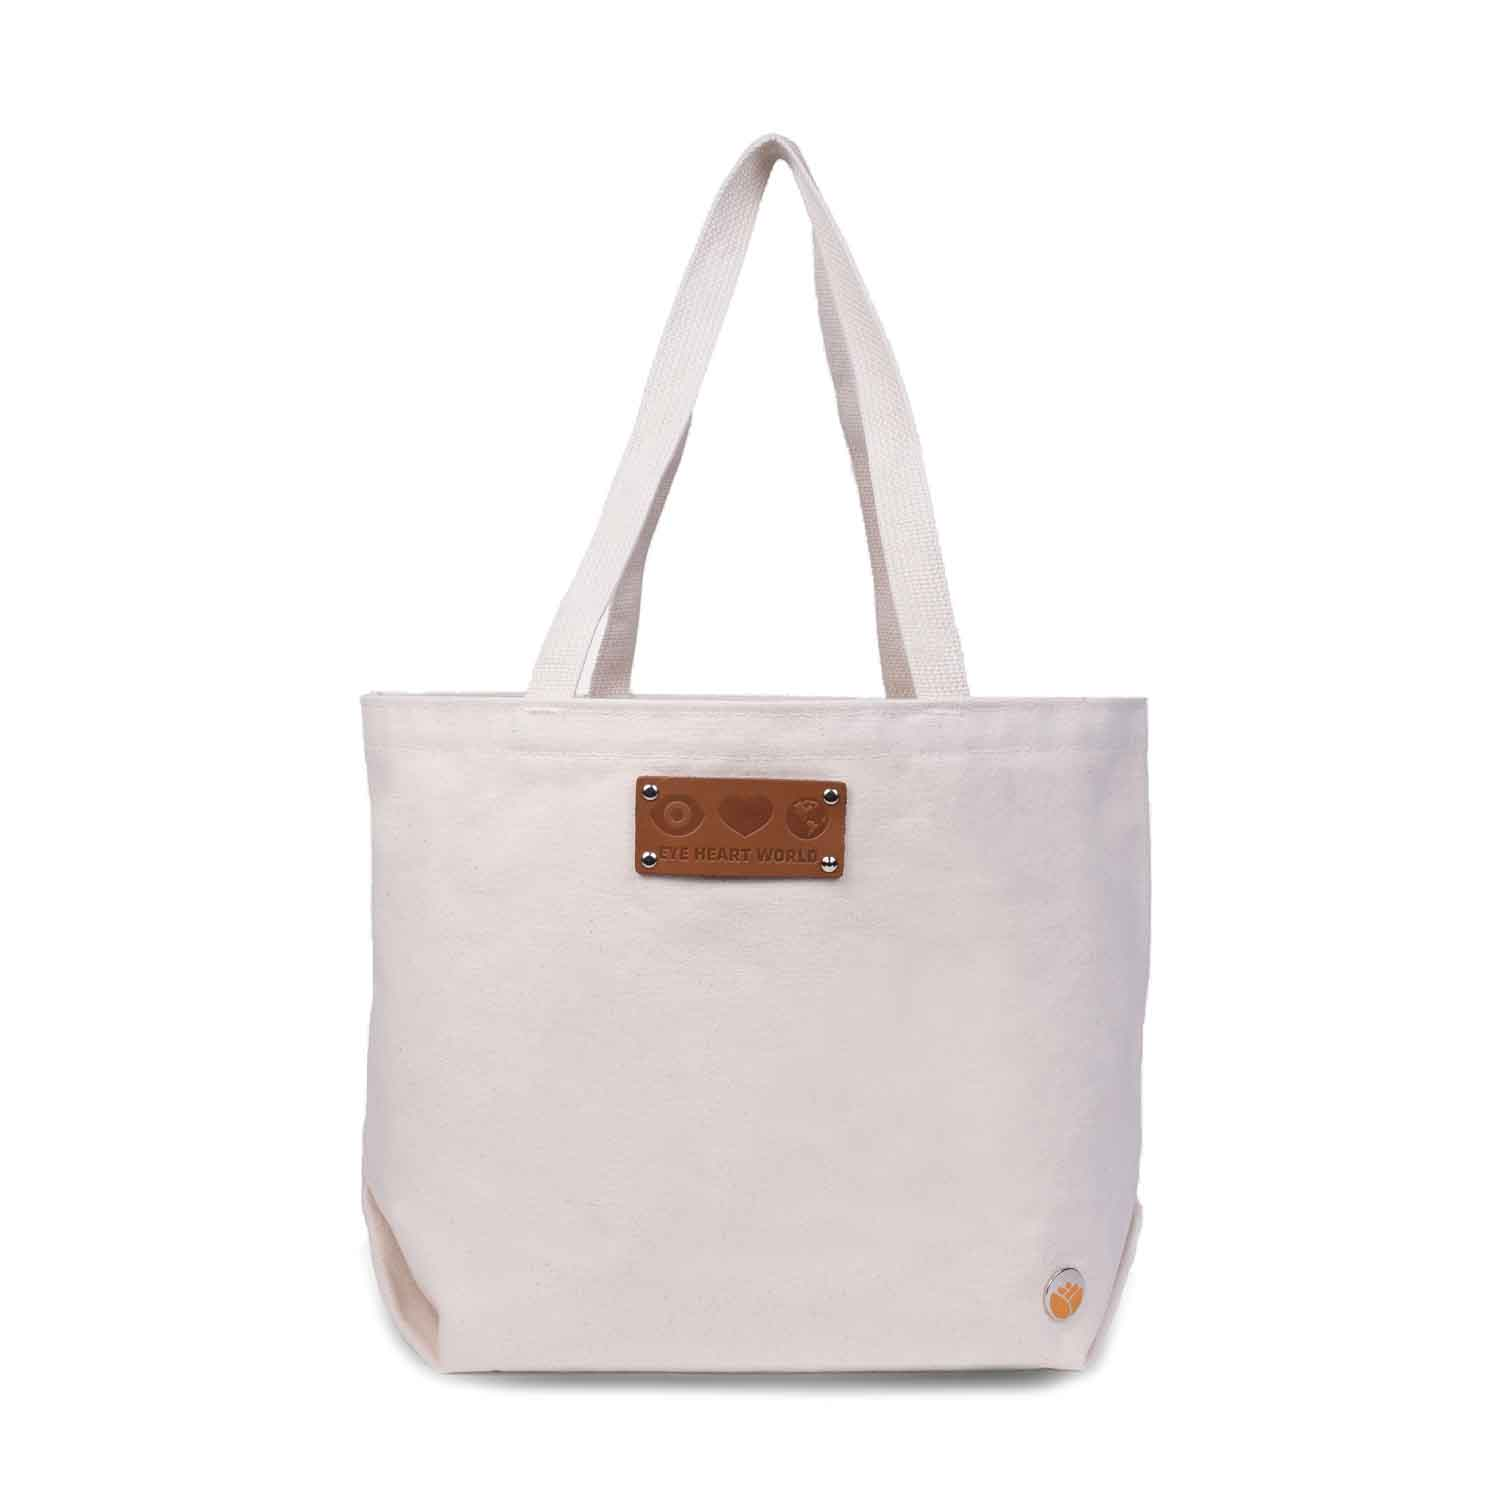 Harriet Tote ,  Eye Heart World  $38  *use code  Chic20  for 20% off*